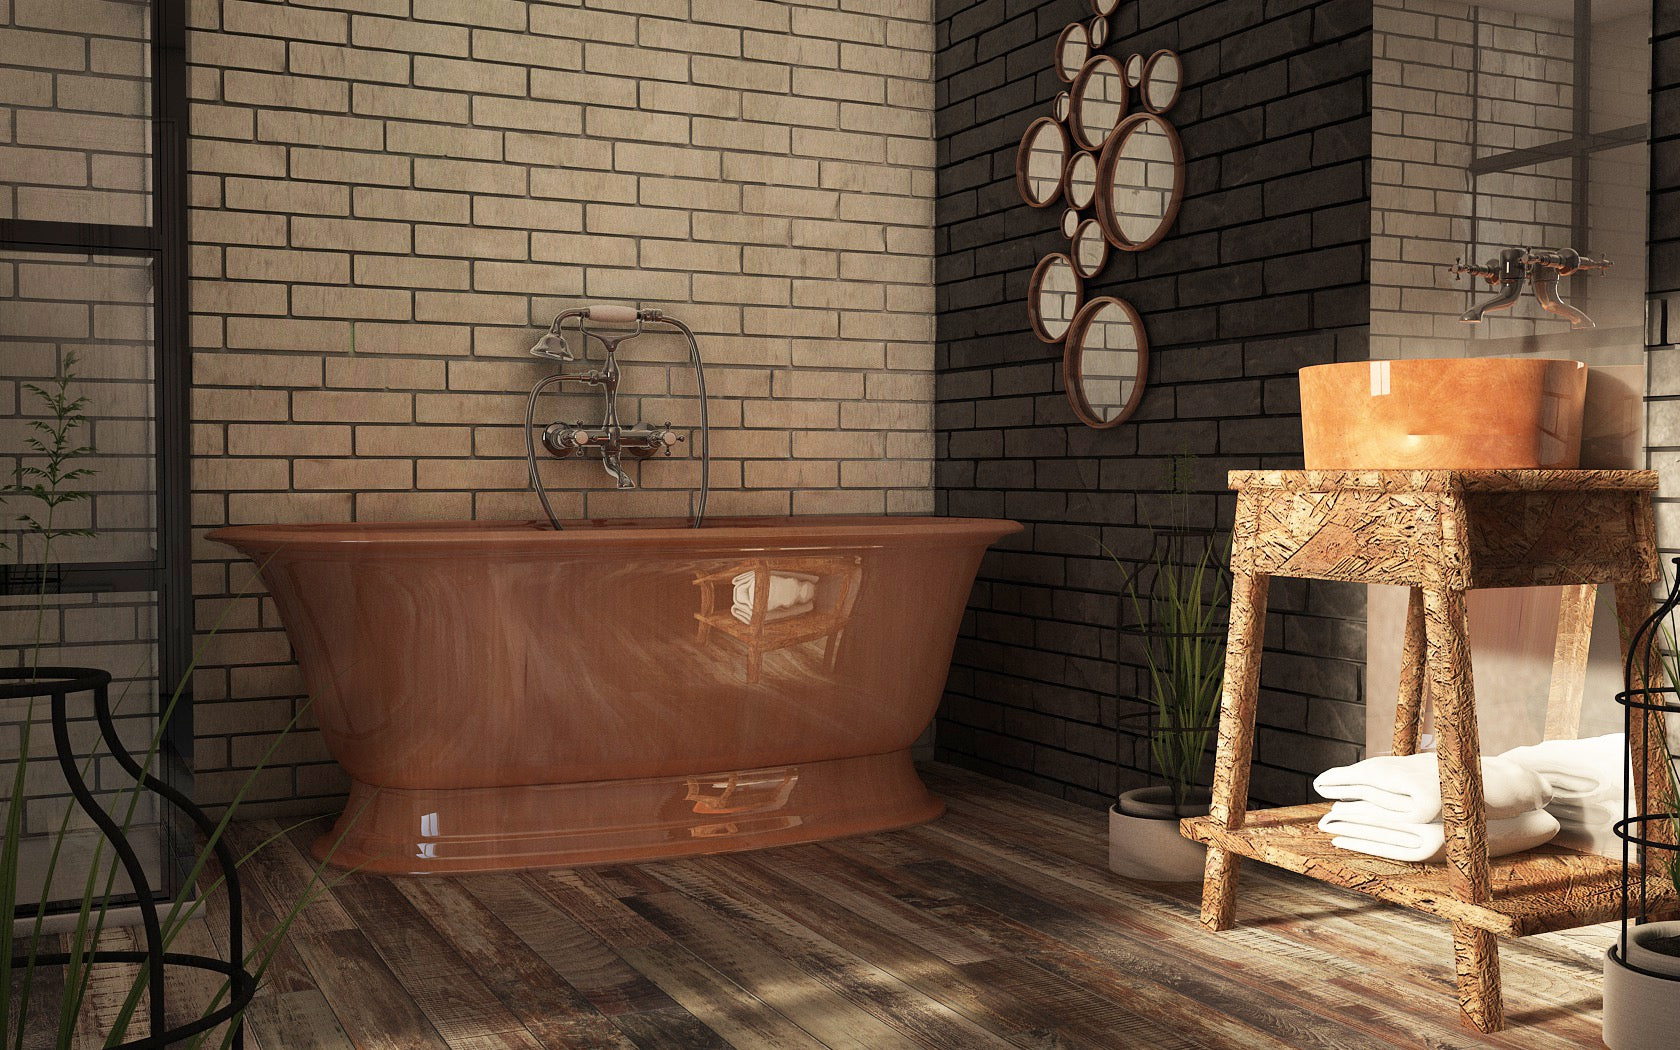 Industrial Bathroom with Copper Bath